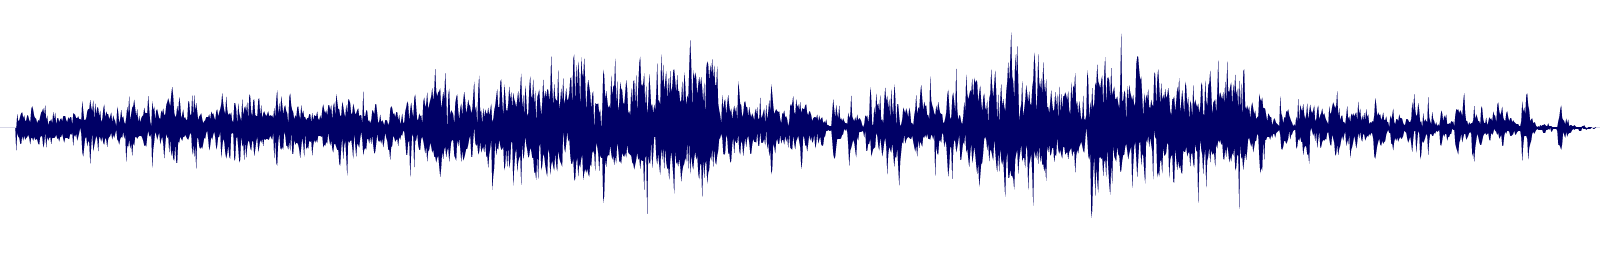 waveform of track #94596